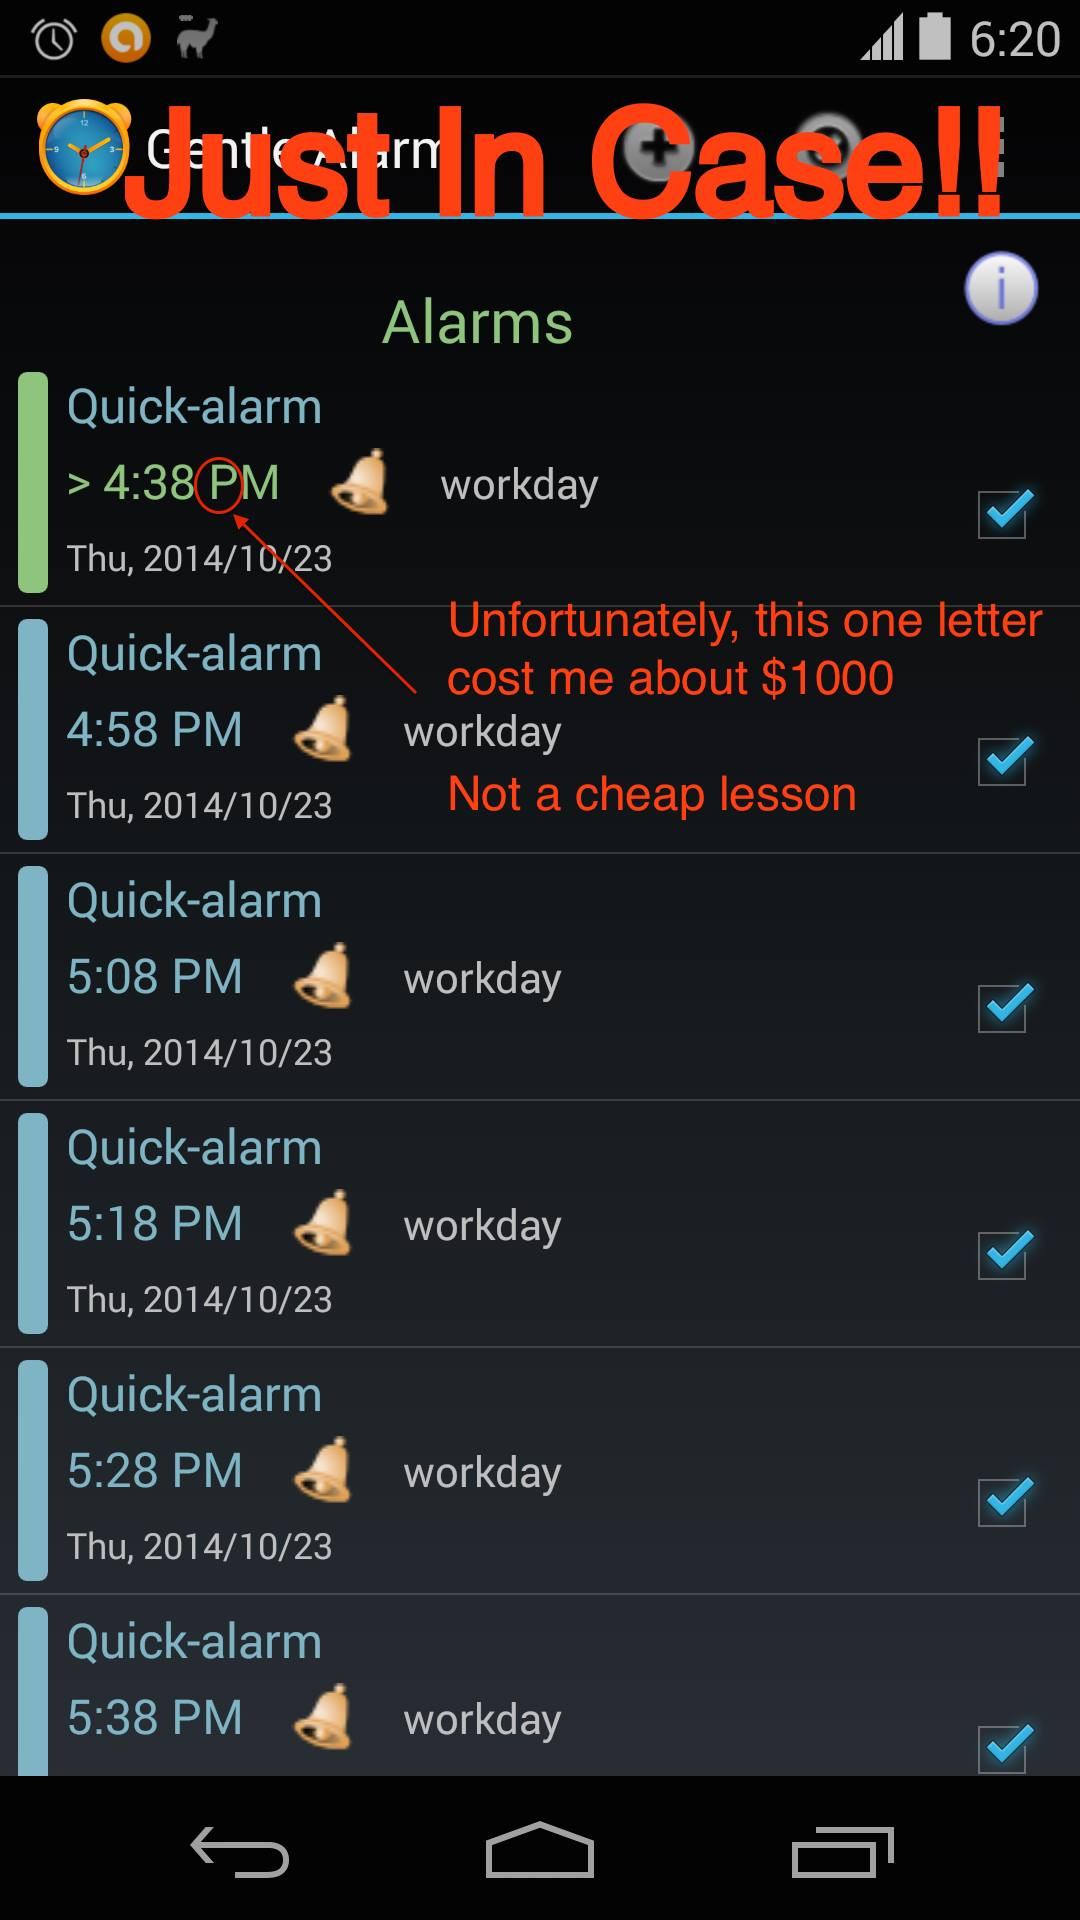 Screenshot of failed alarm